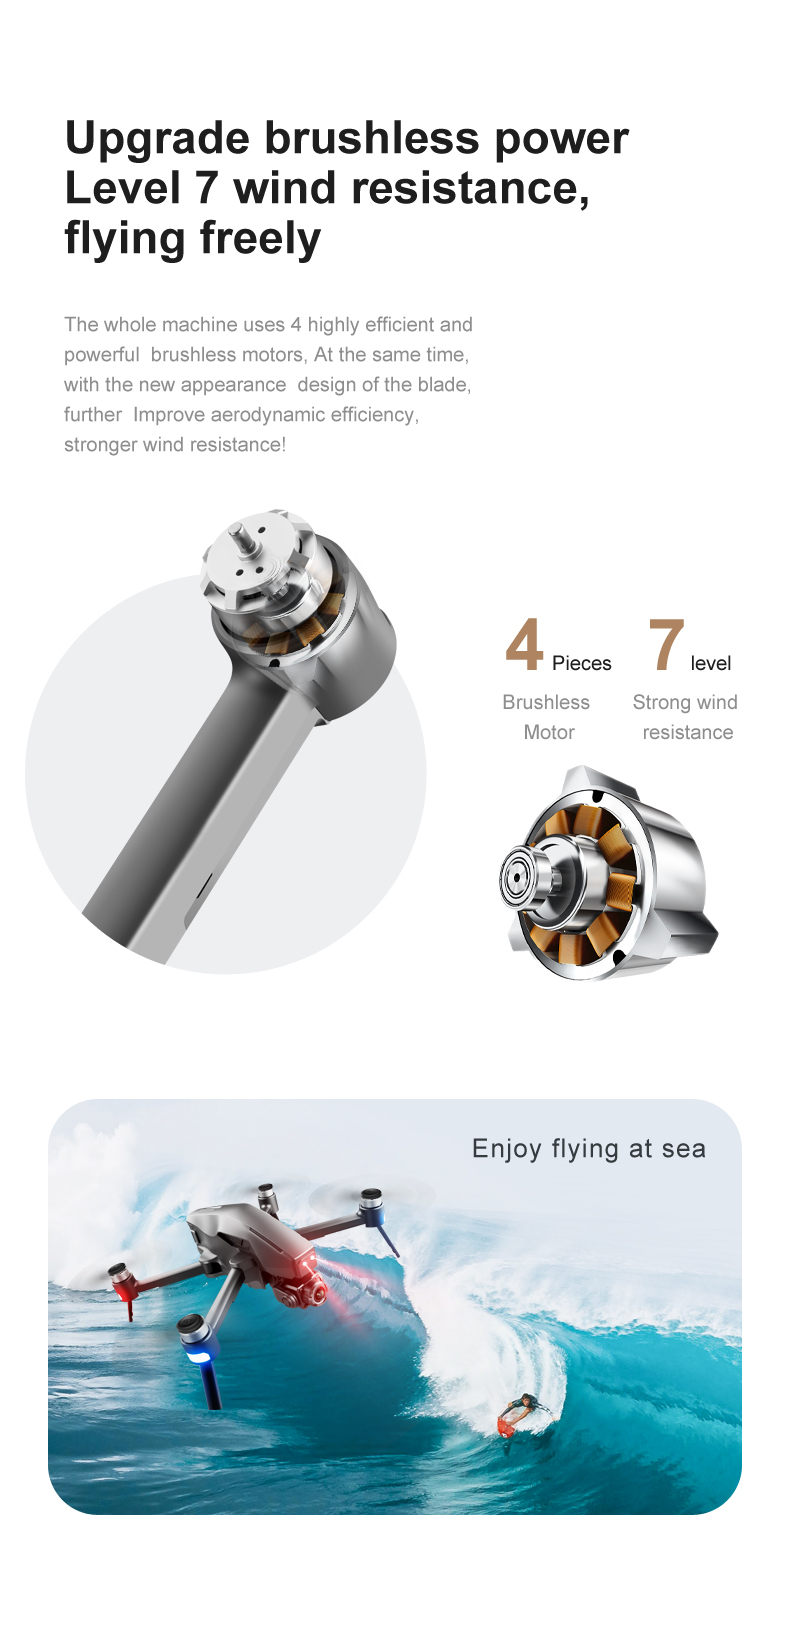 U65173c8b3af749d08f7a4bbcd24a49f6b - 2021 M1 Pro 2 drone 4k HD mechanical 2-Axis gimbal camera 5G wifi gps system supports TF card drones distance 1.6km